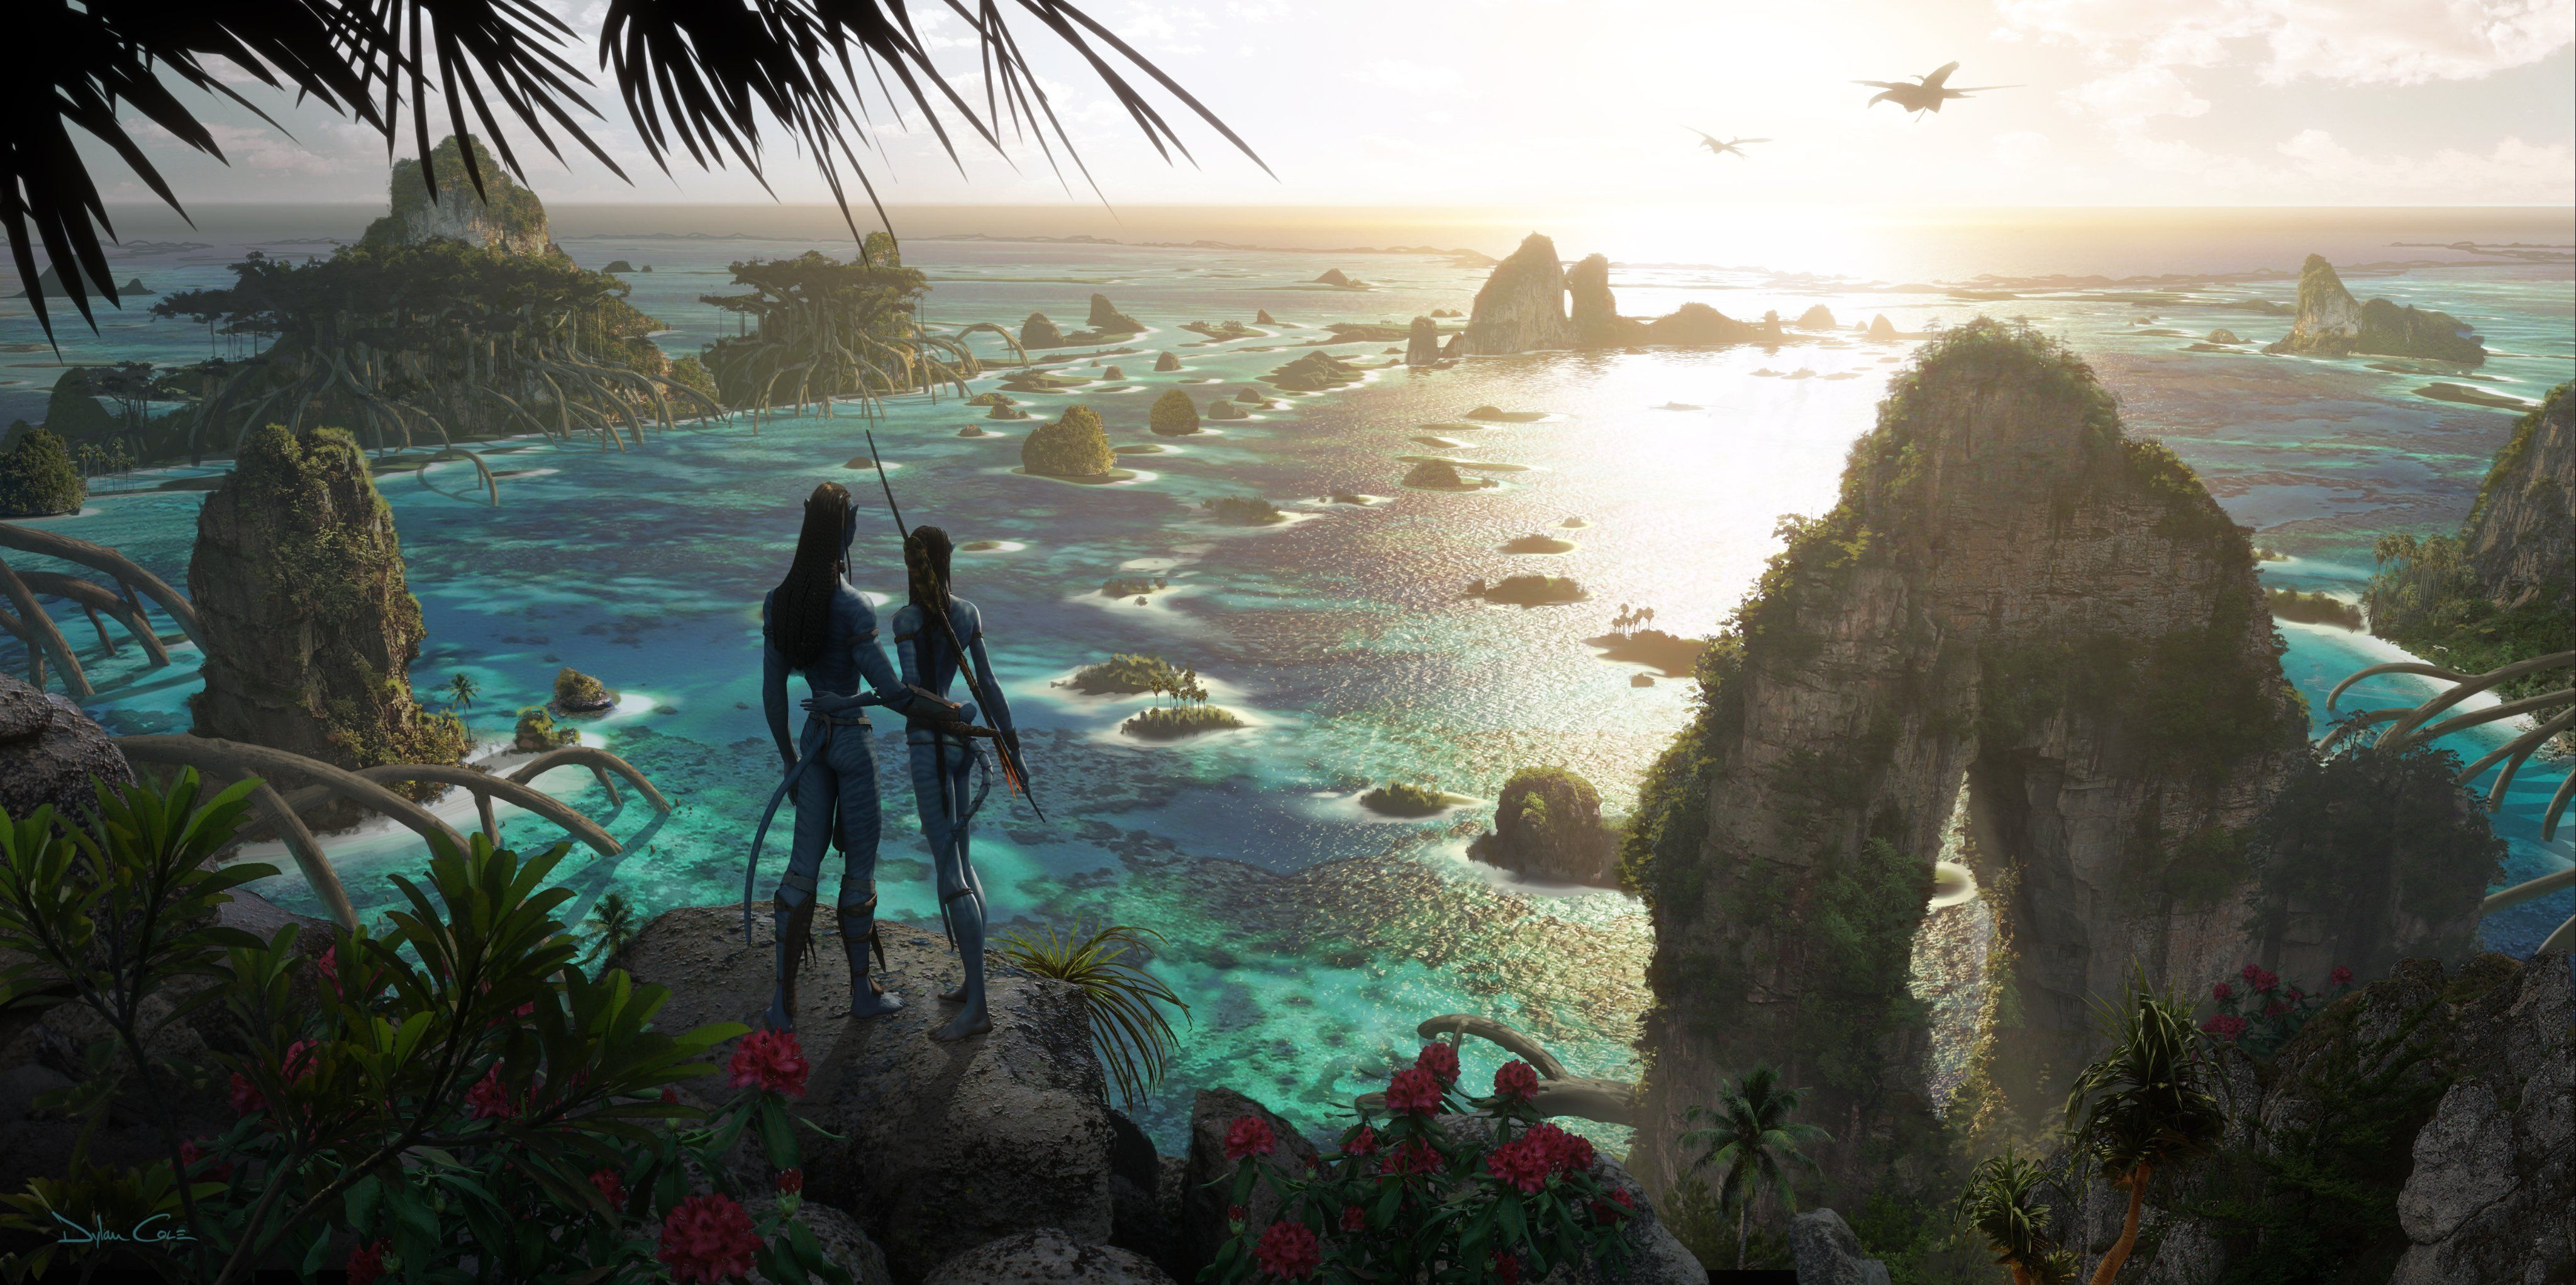 Avatar 2 Drops First Look At New Worlds Creatures Avatar Movie Concept Art Avatar James Cameron